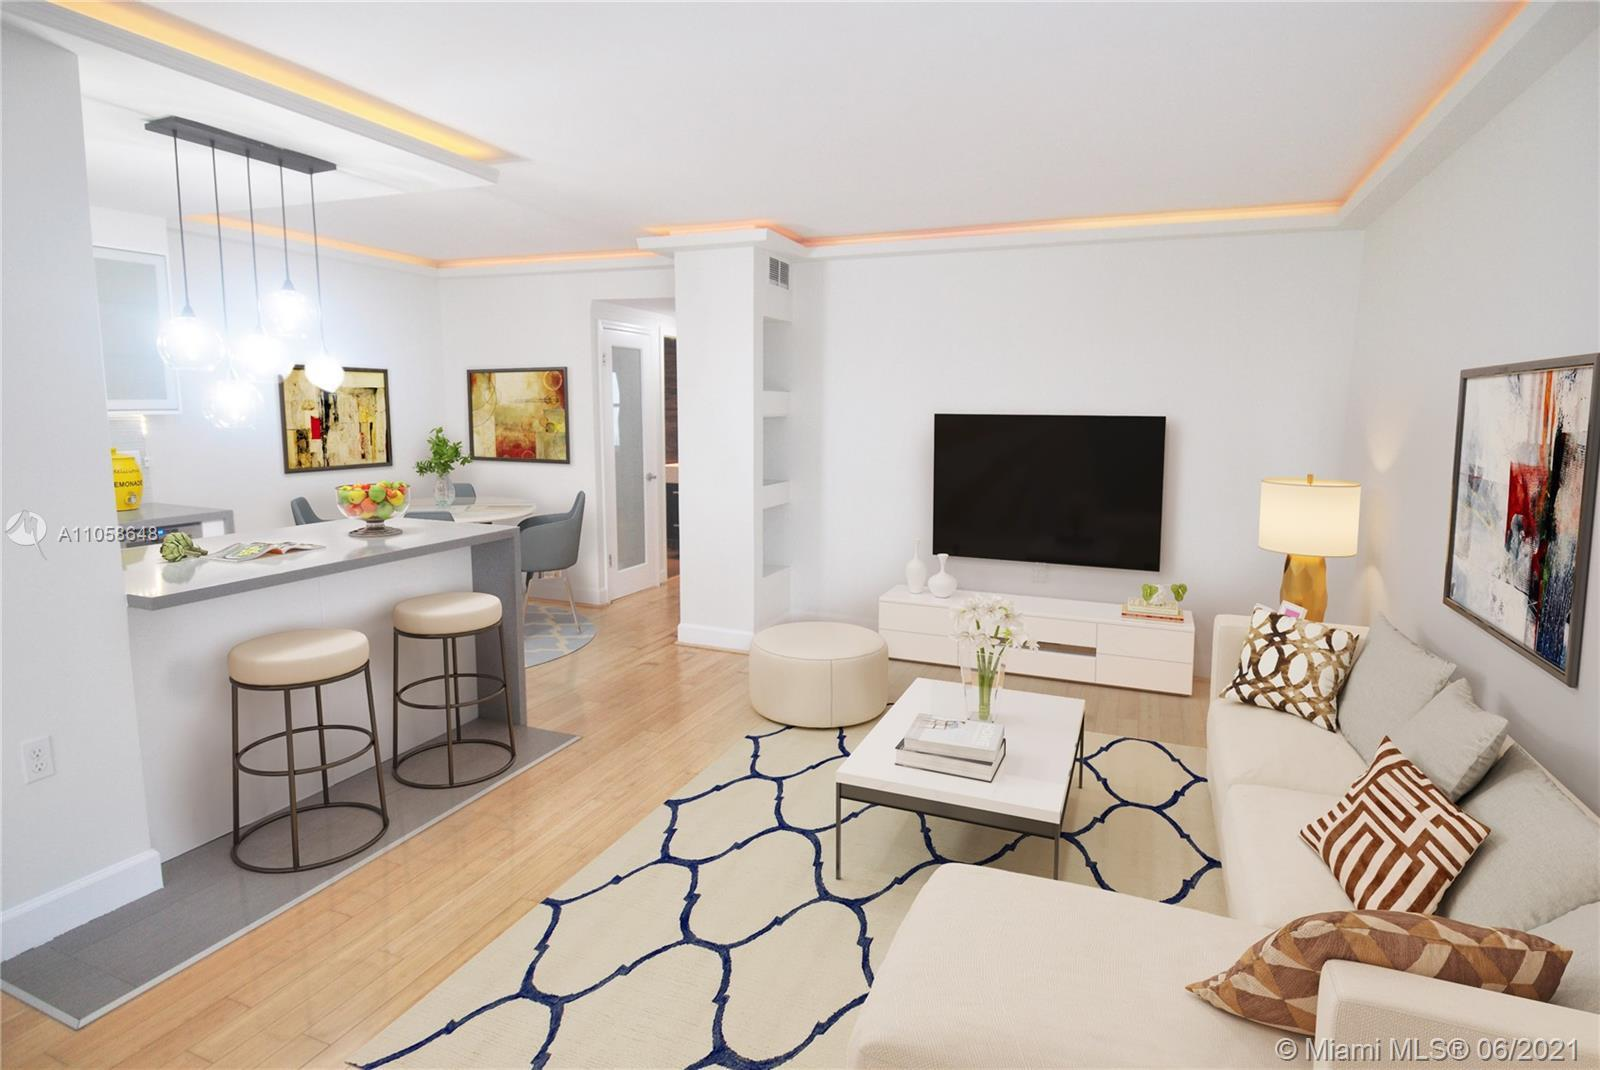 Large 1 Bedroom + Den and 1.5 Bath in the heart of South Beach. Bright and quiet unit with lots of c